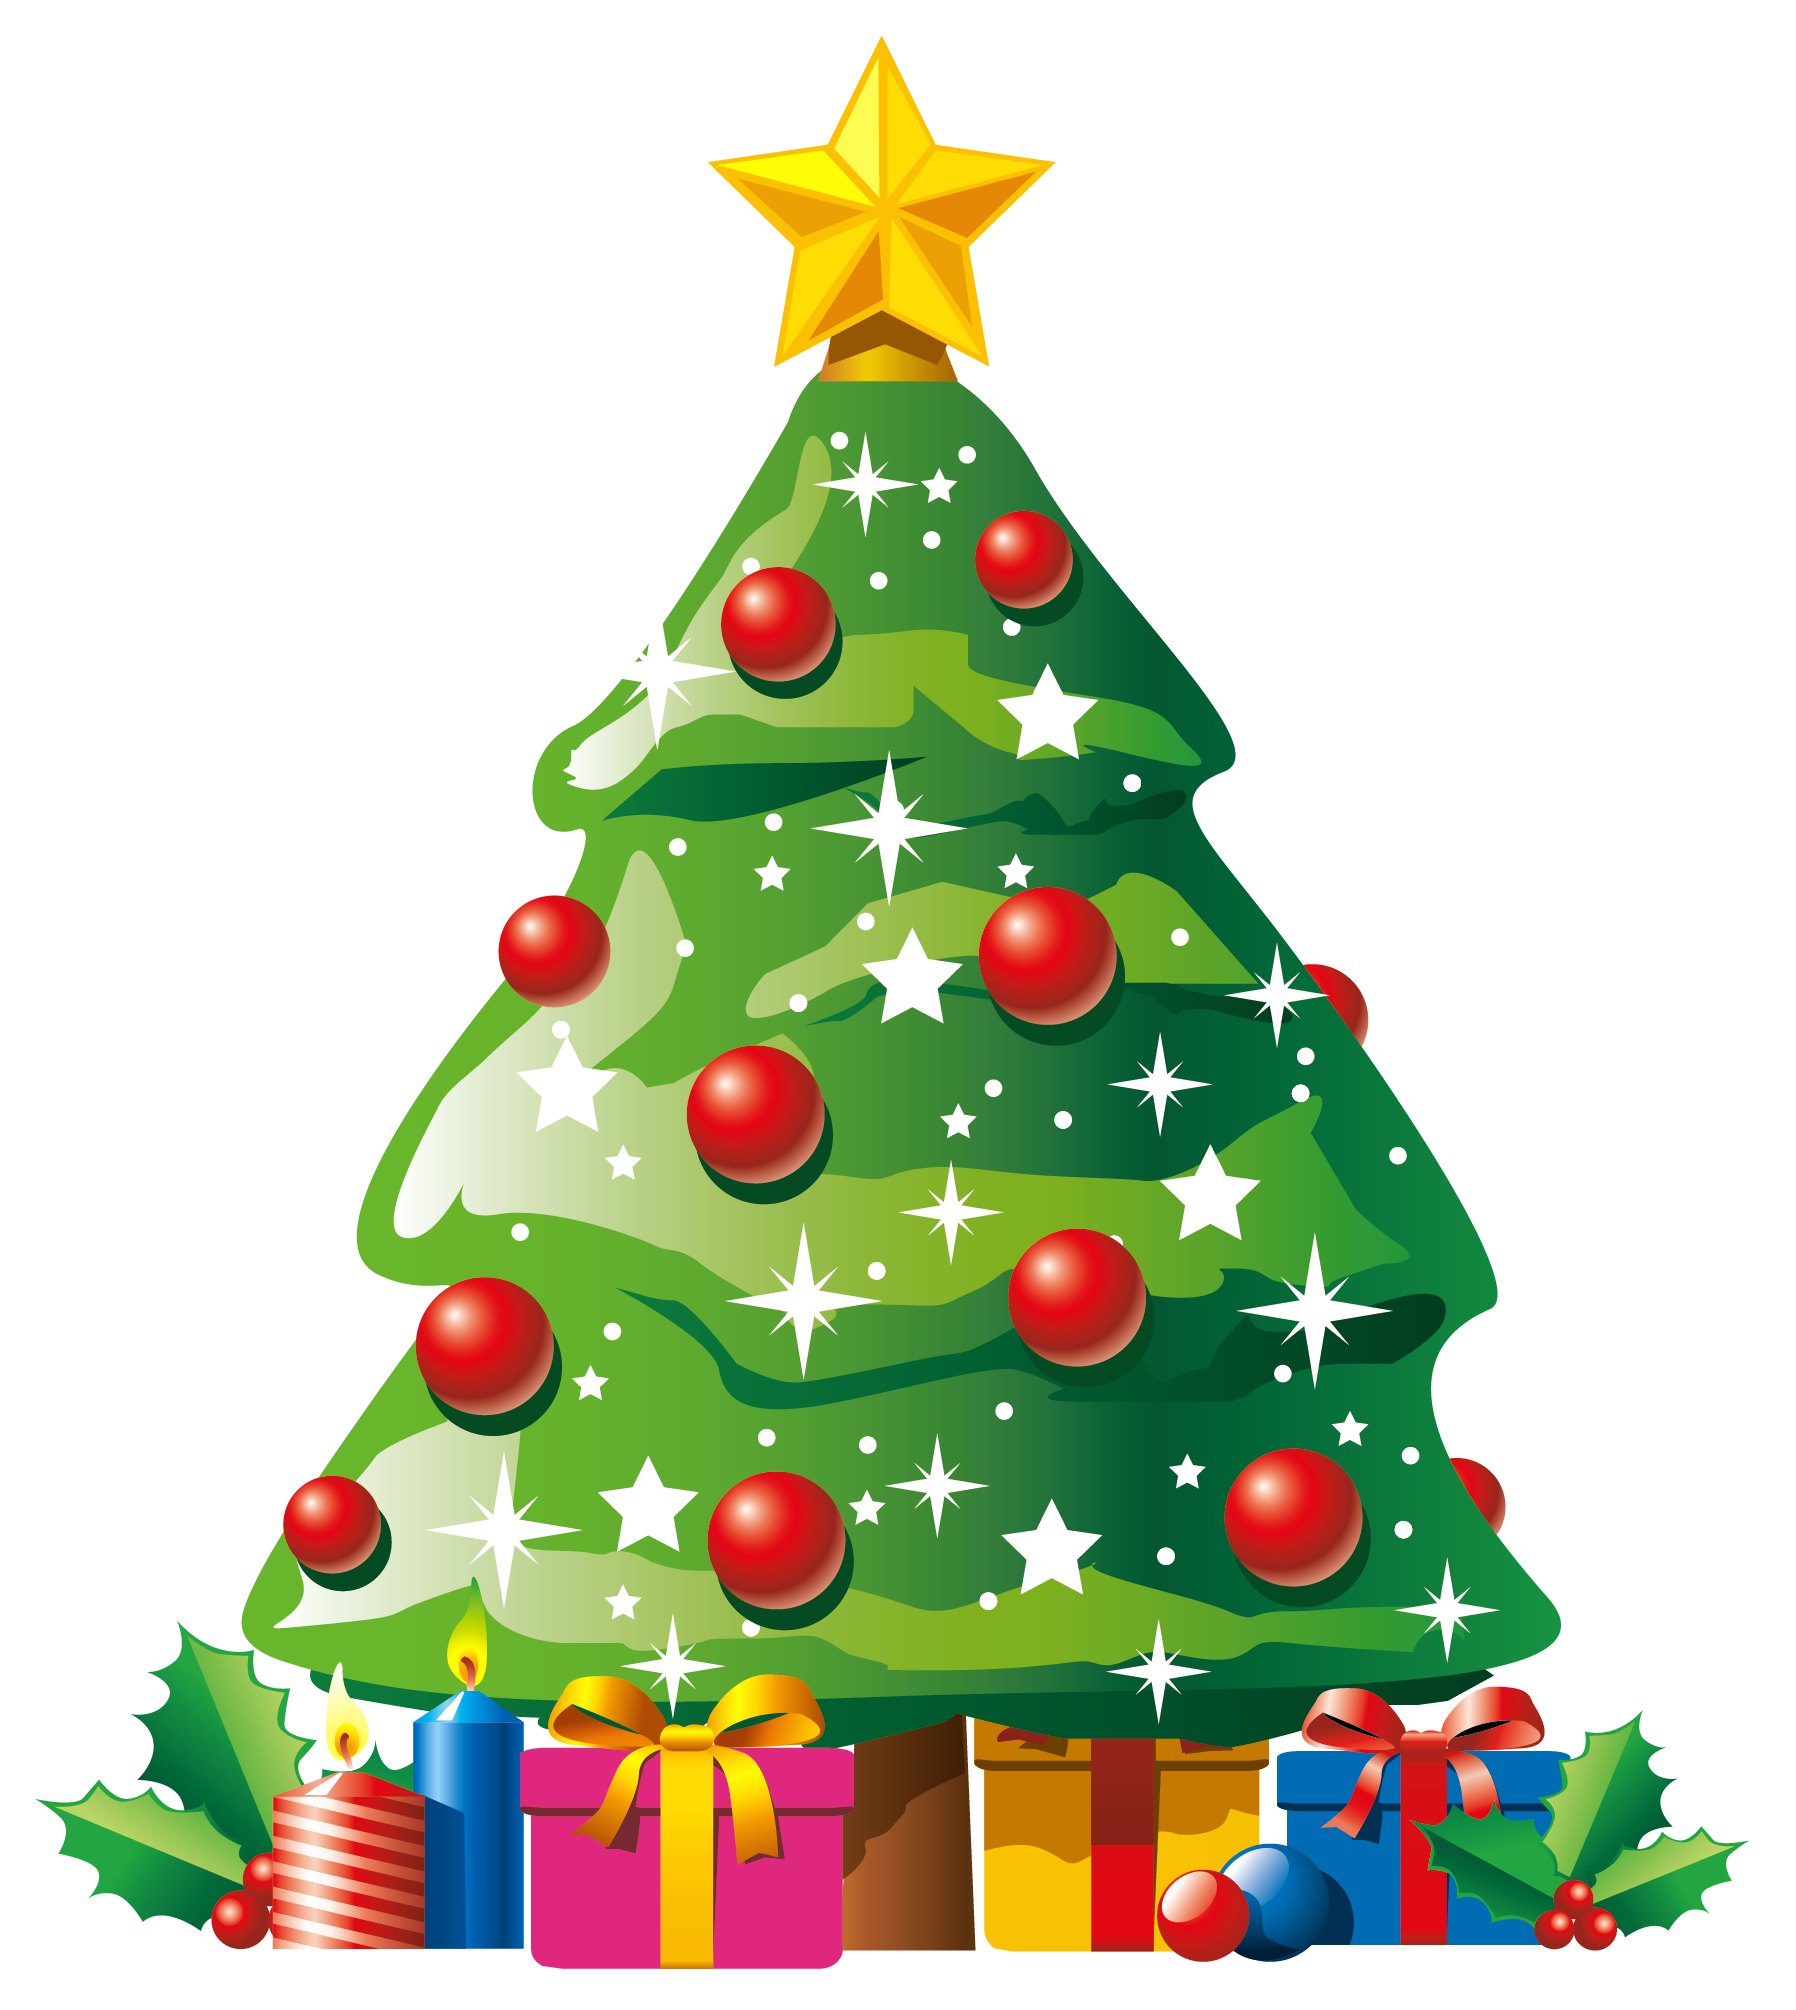 Gift clipart chrismas presents. Transparent deco christmas tree